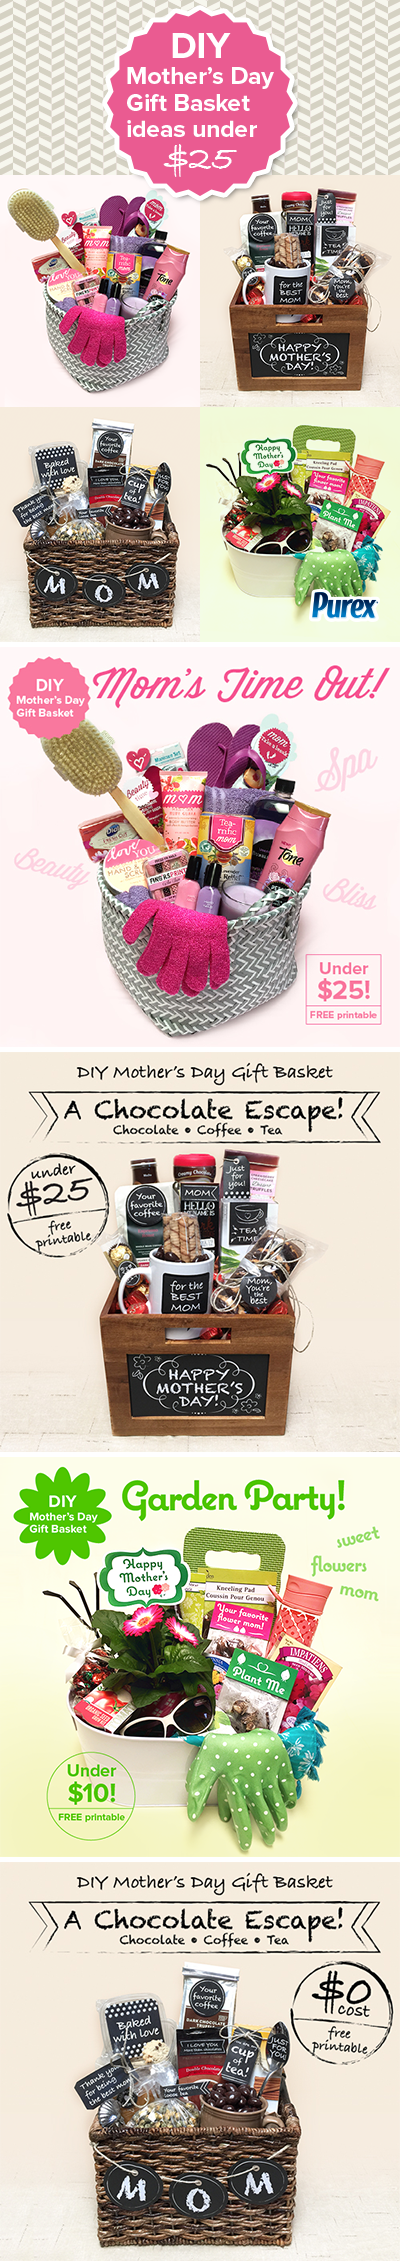 DIY Motherus Day gift basket ideas under   For the Home